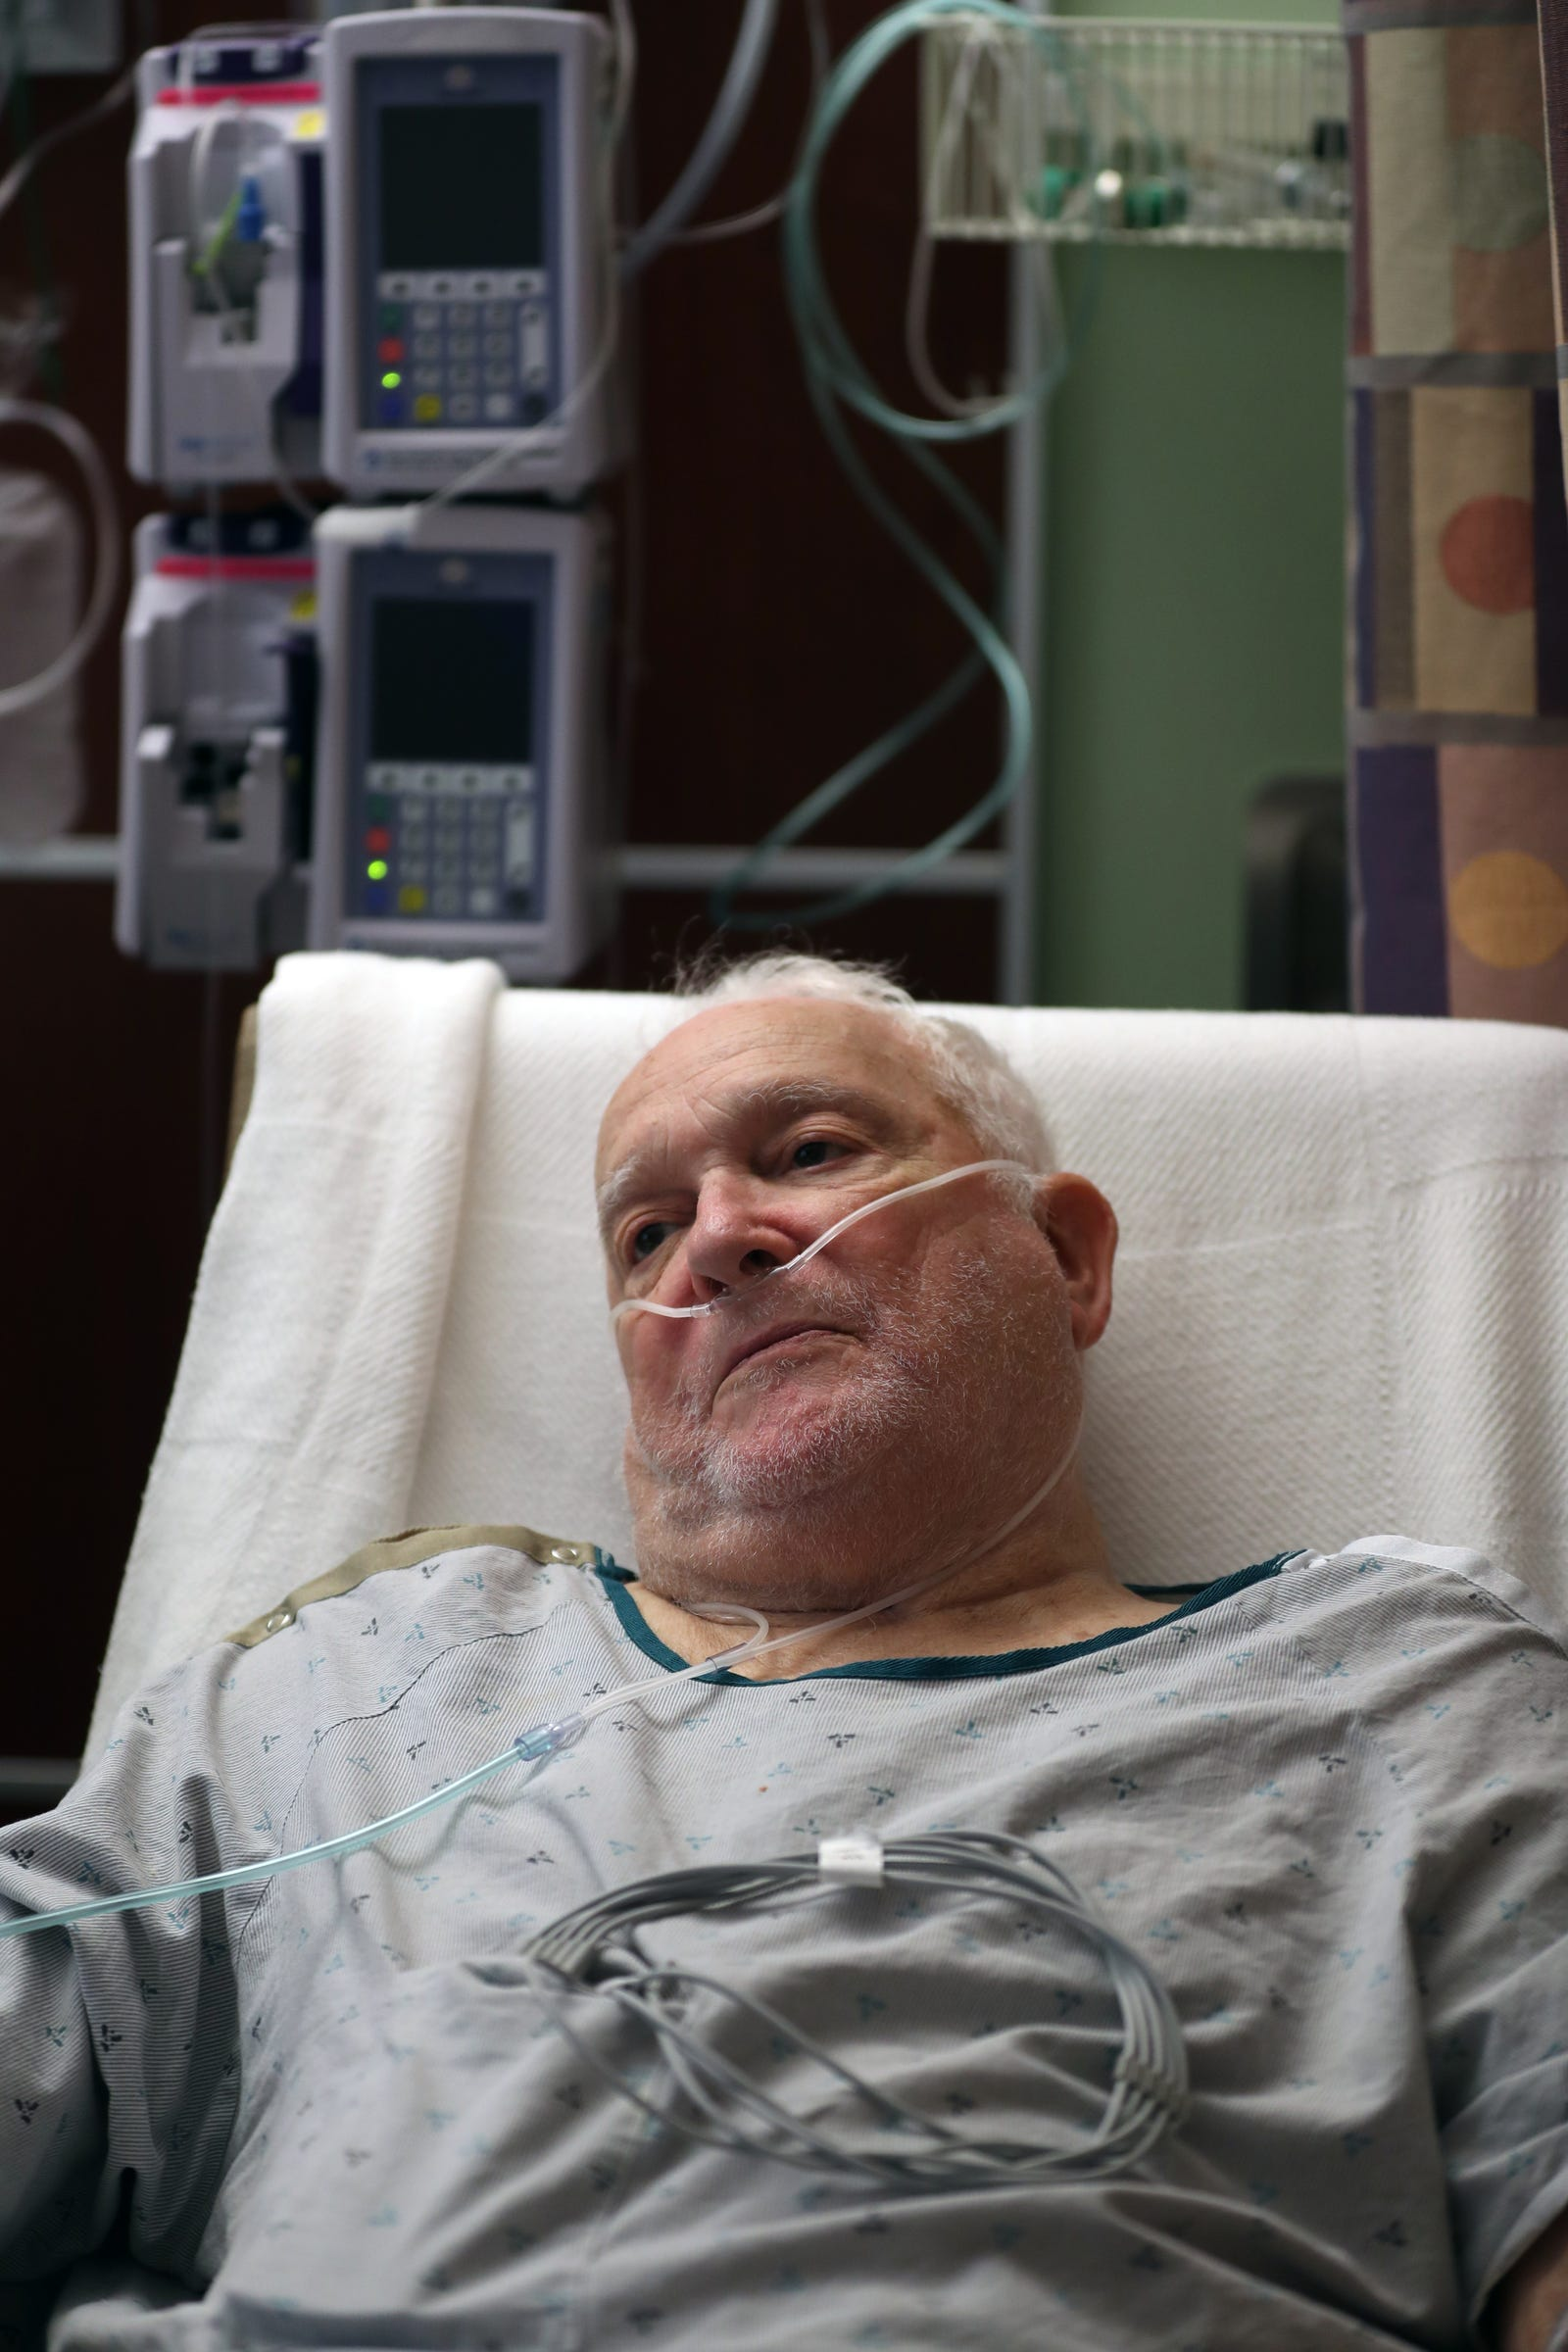 He got breakthrough COVID-19 after entire family was infected during Up North trip